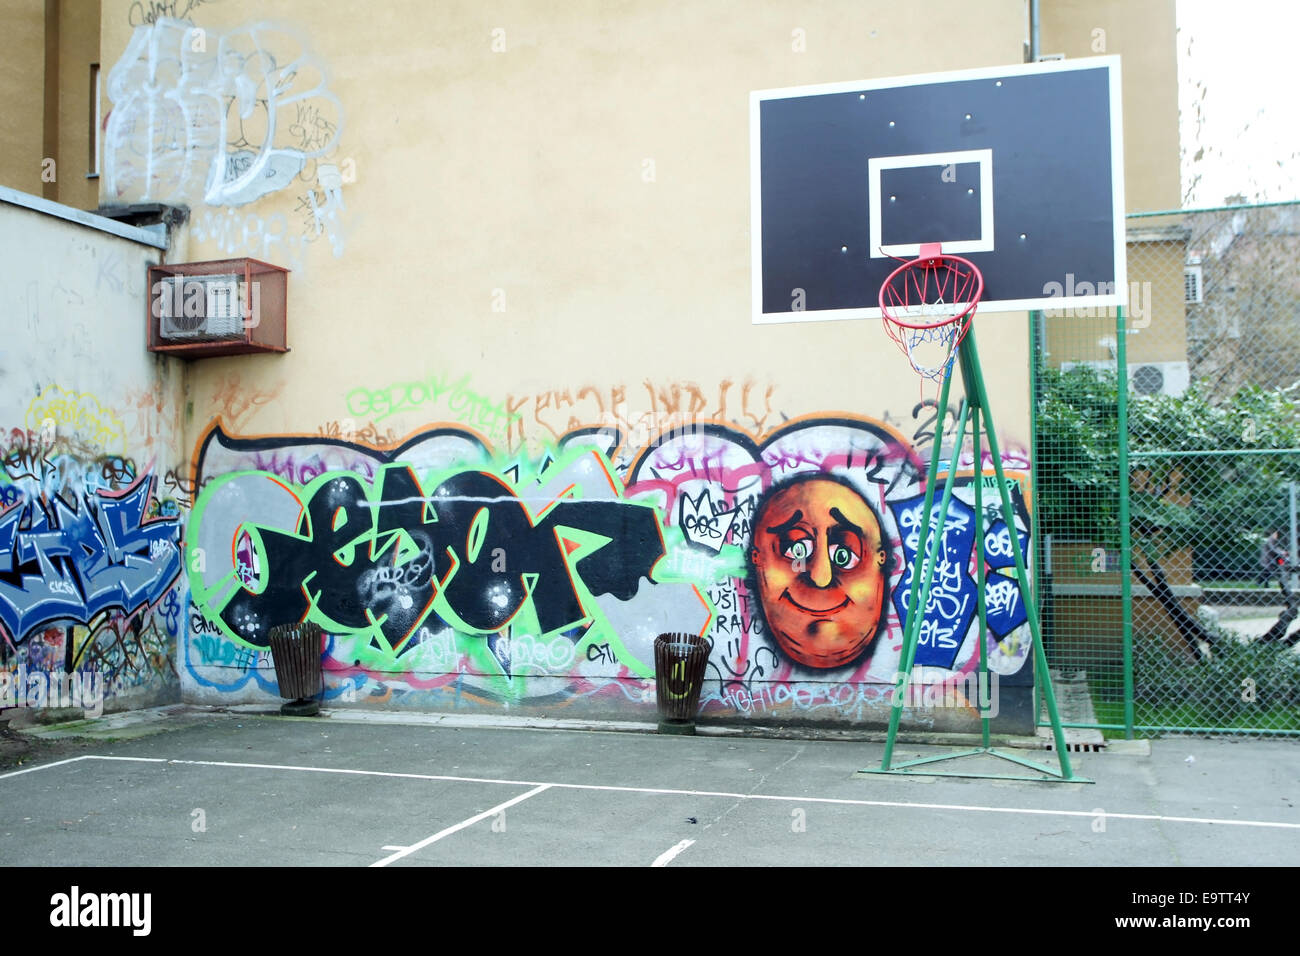 Graffiti wall zagreb - Zagreb Croatia February 24 Basketball Yard With Basketball Hoop And Graffiti Walls On